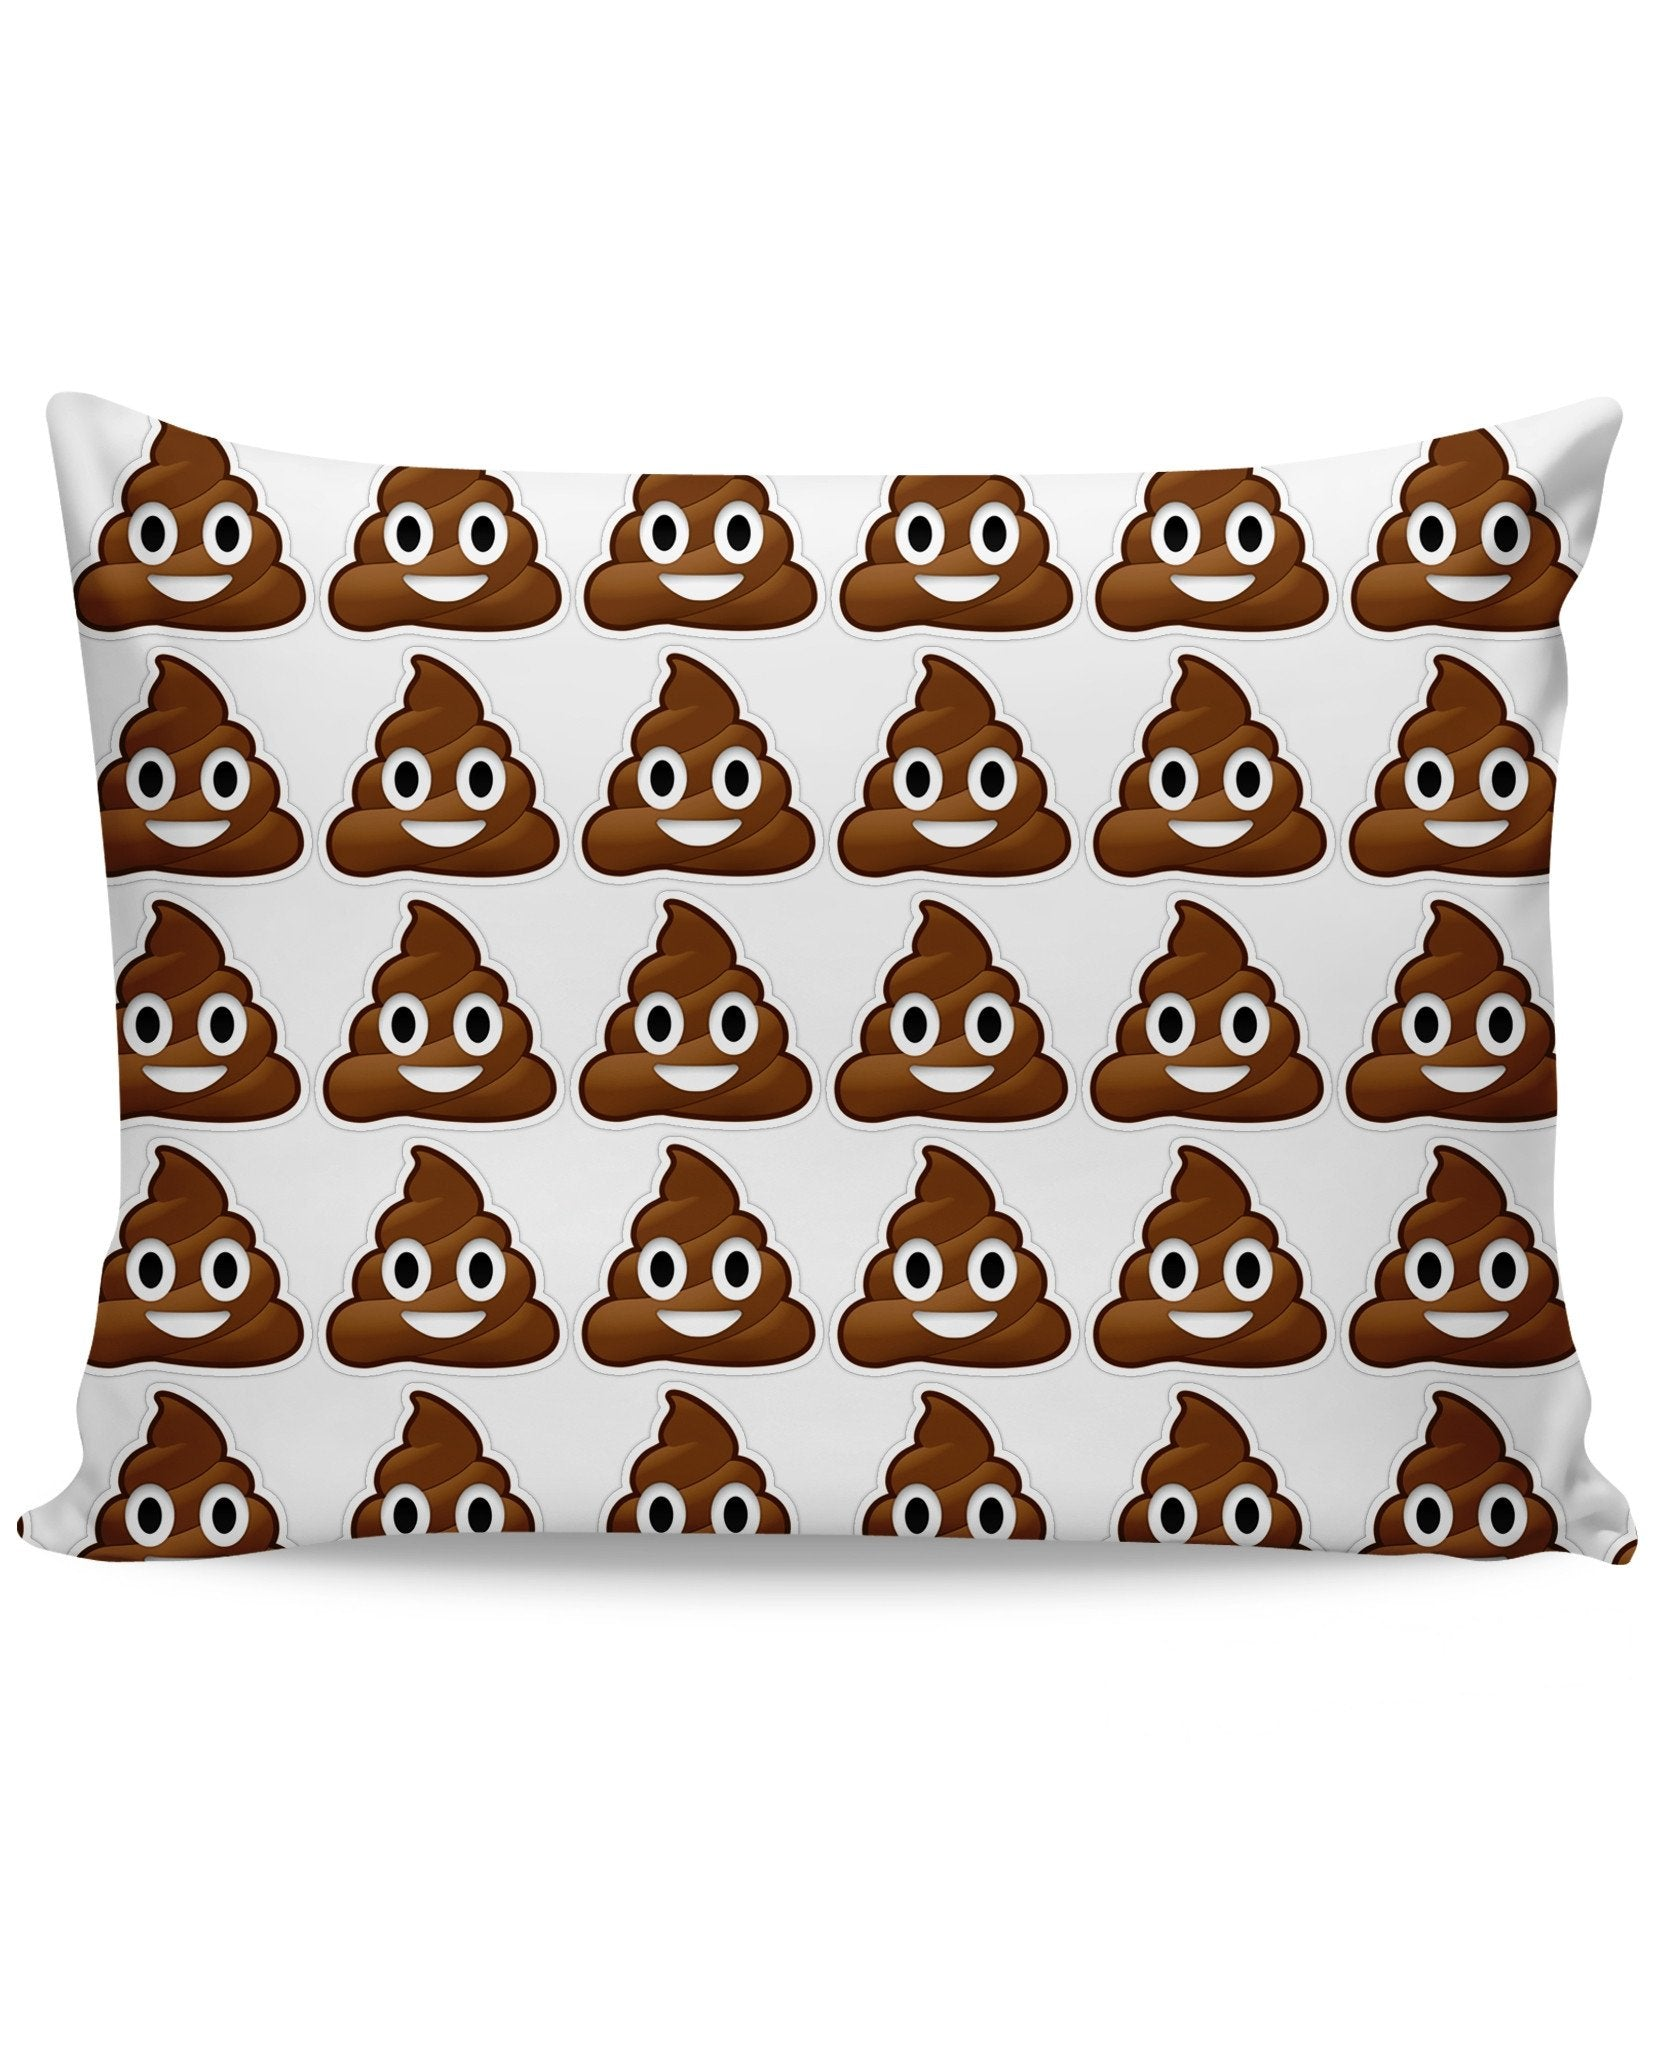 Poop Emoji Pillow Case